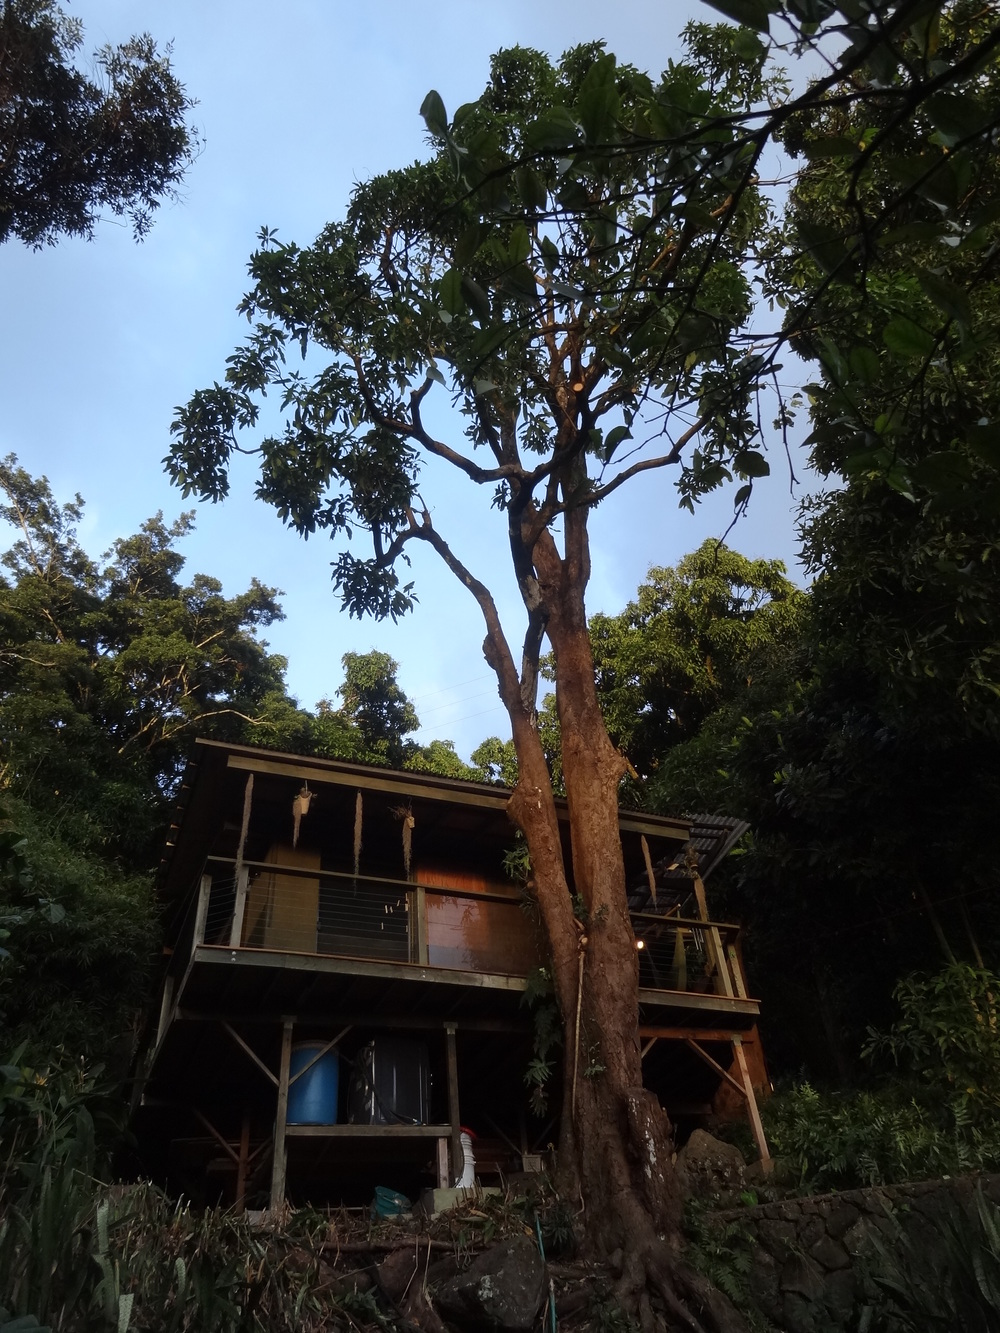 086_constr_treehouse mango tree trim.JPG